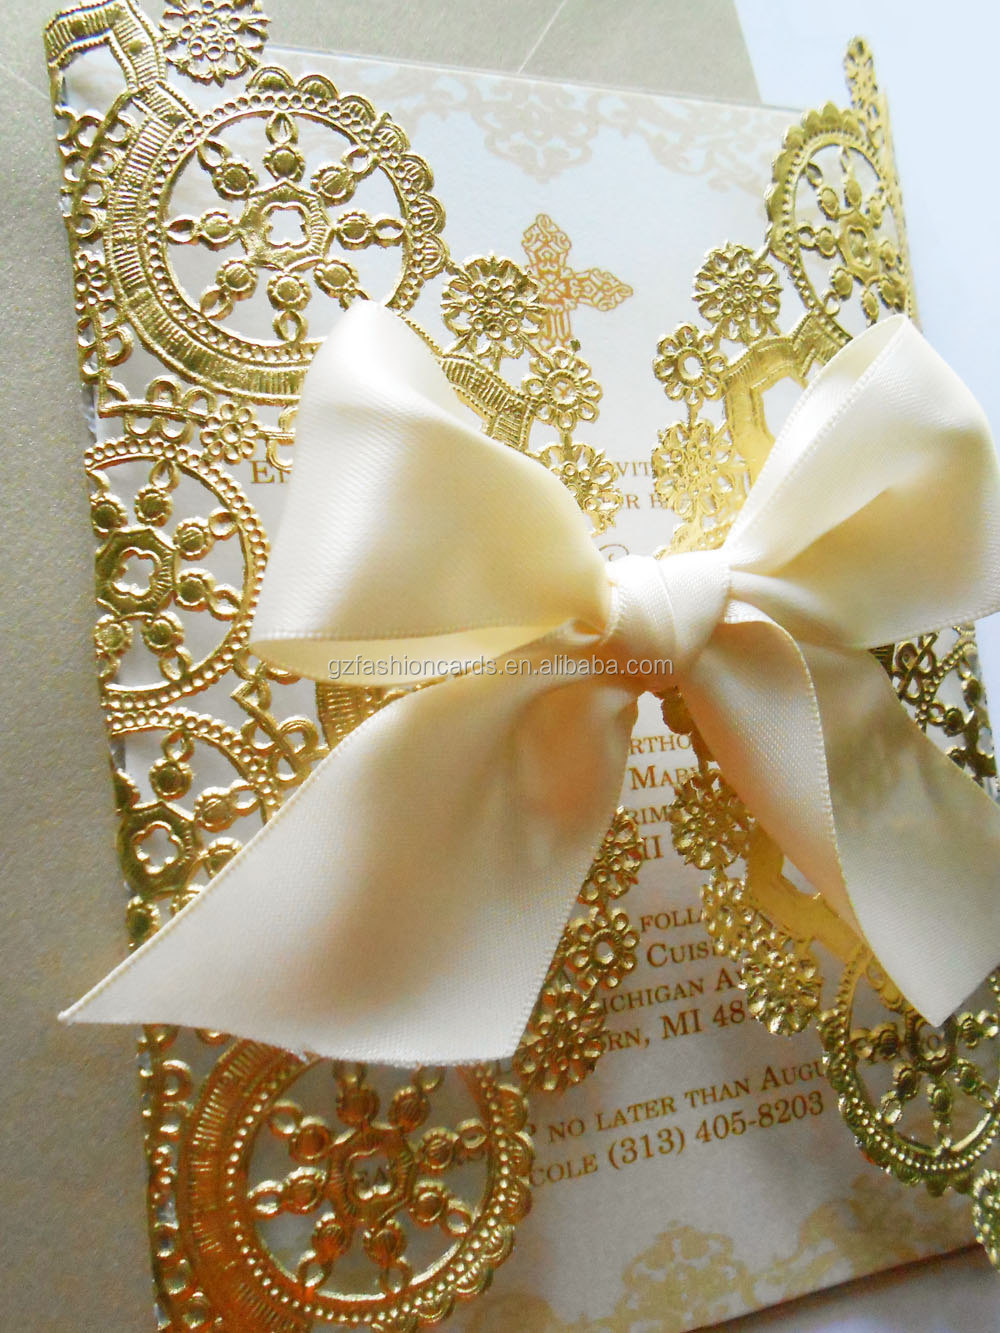 Doily Style Metallic Gold Invitation Foil Paper Wedding Invitations